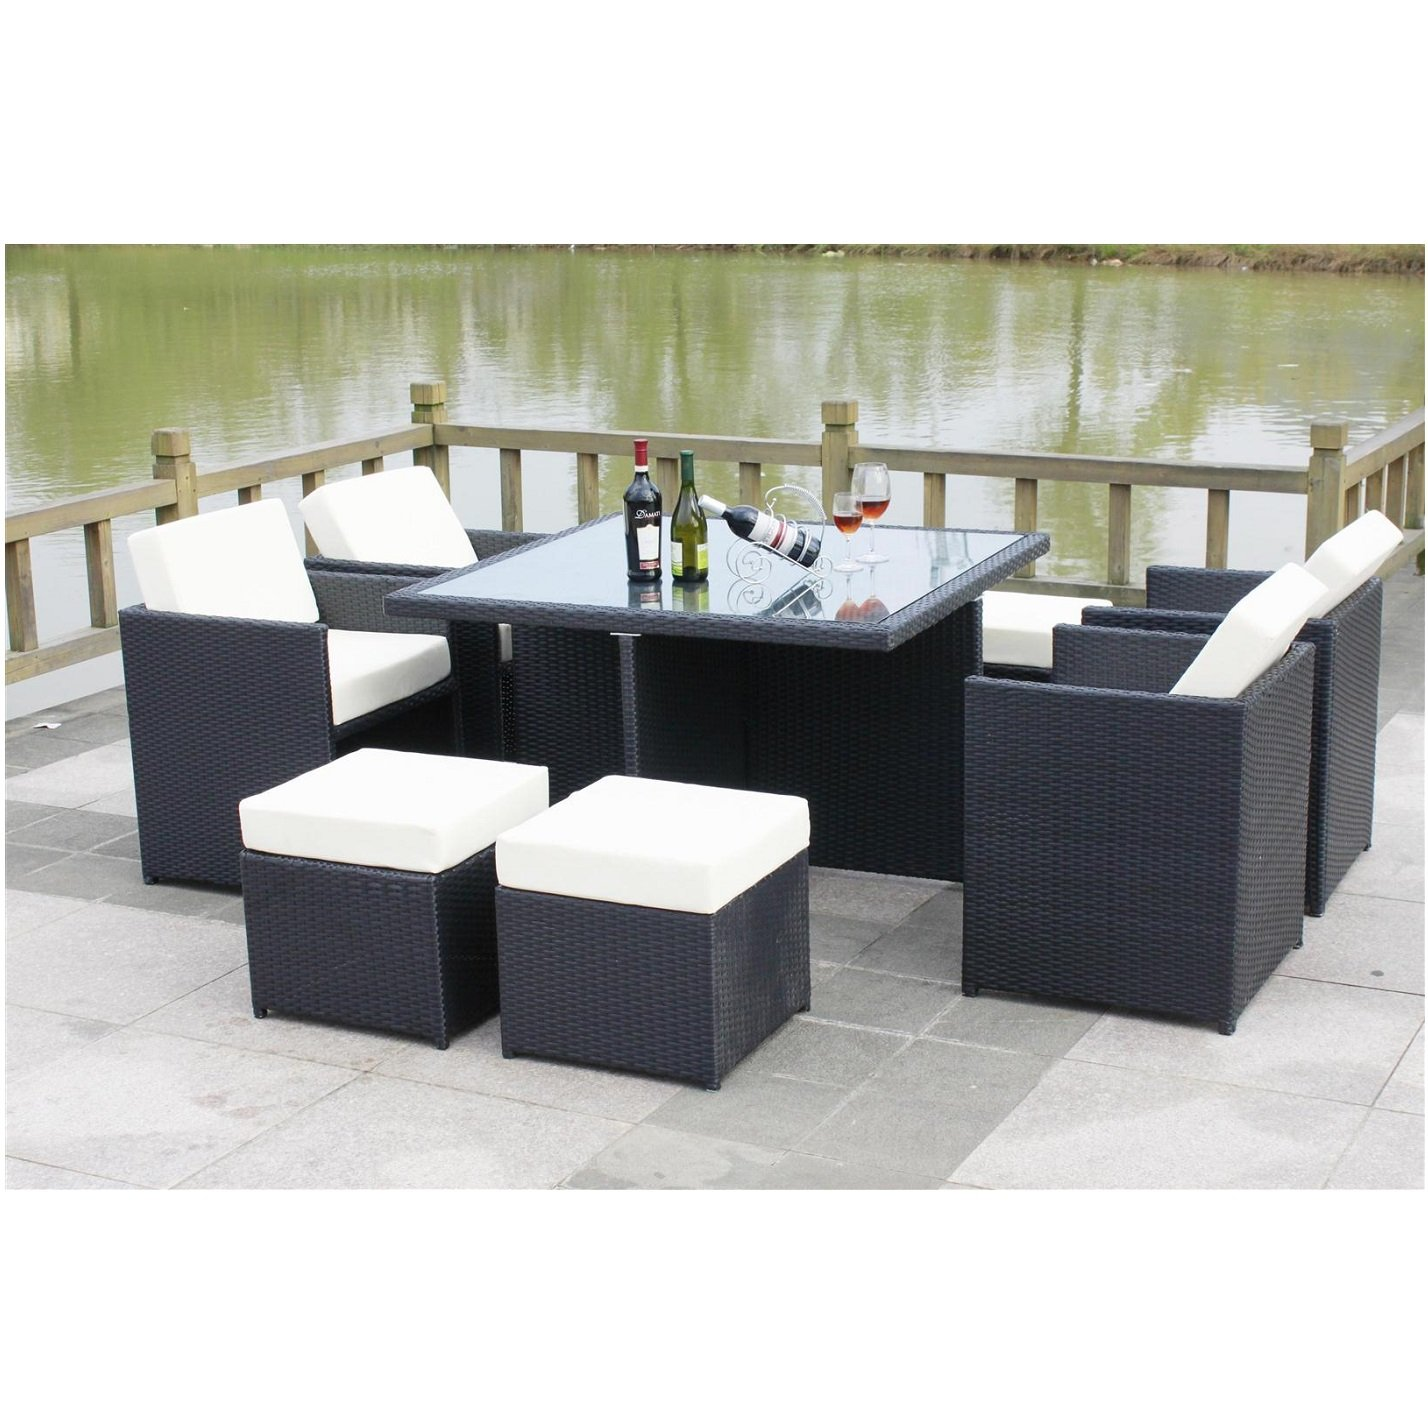 All Seasons Outdoor JT40s Rattan Garden Furniture Outdoor Patio